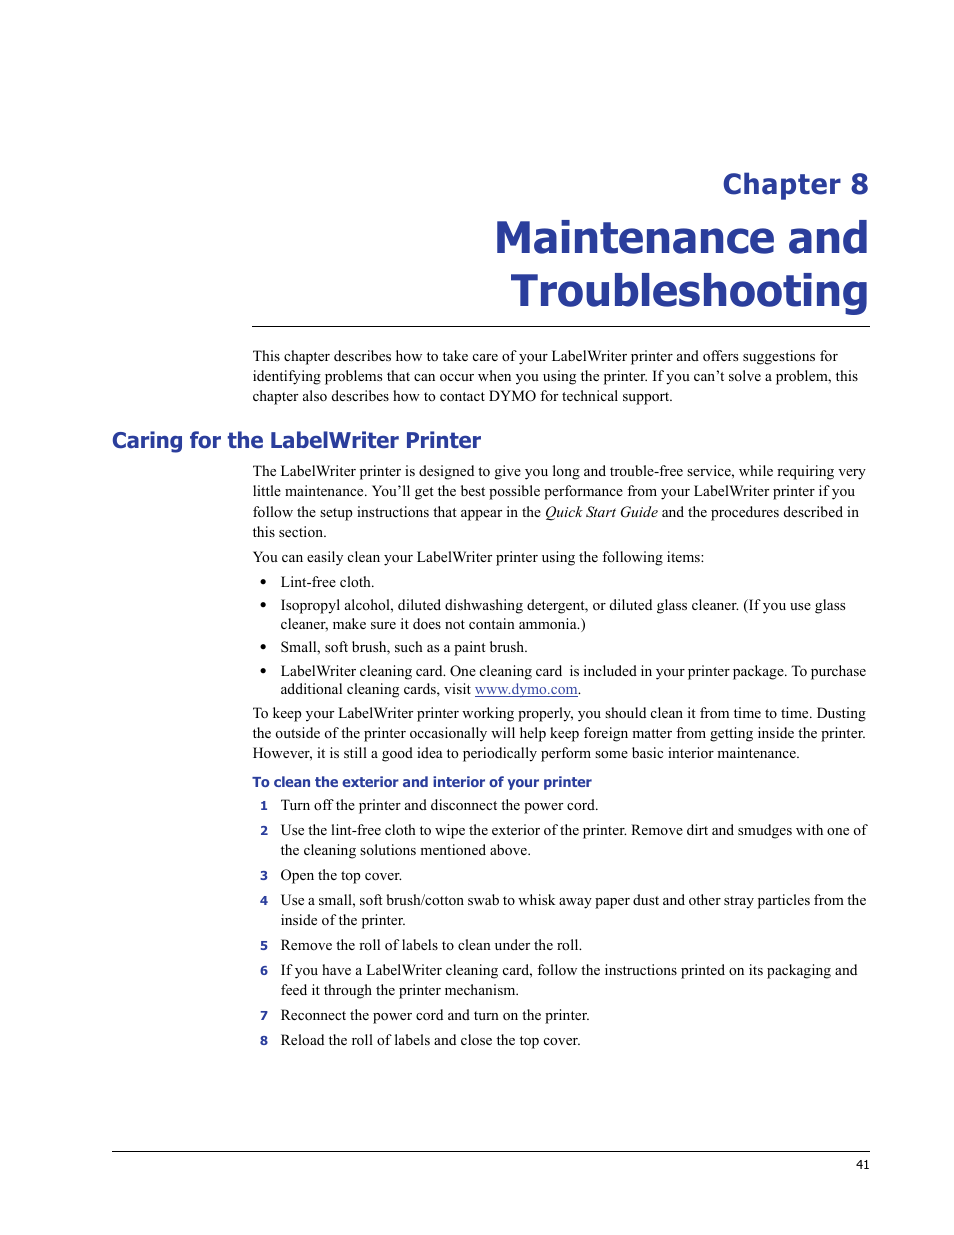 Maintenance and troubleshooting, Caring for the labelwriter